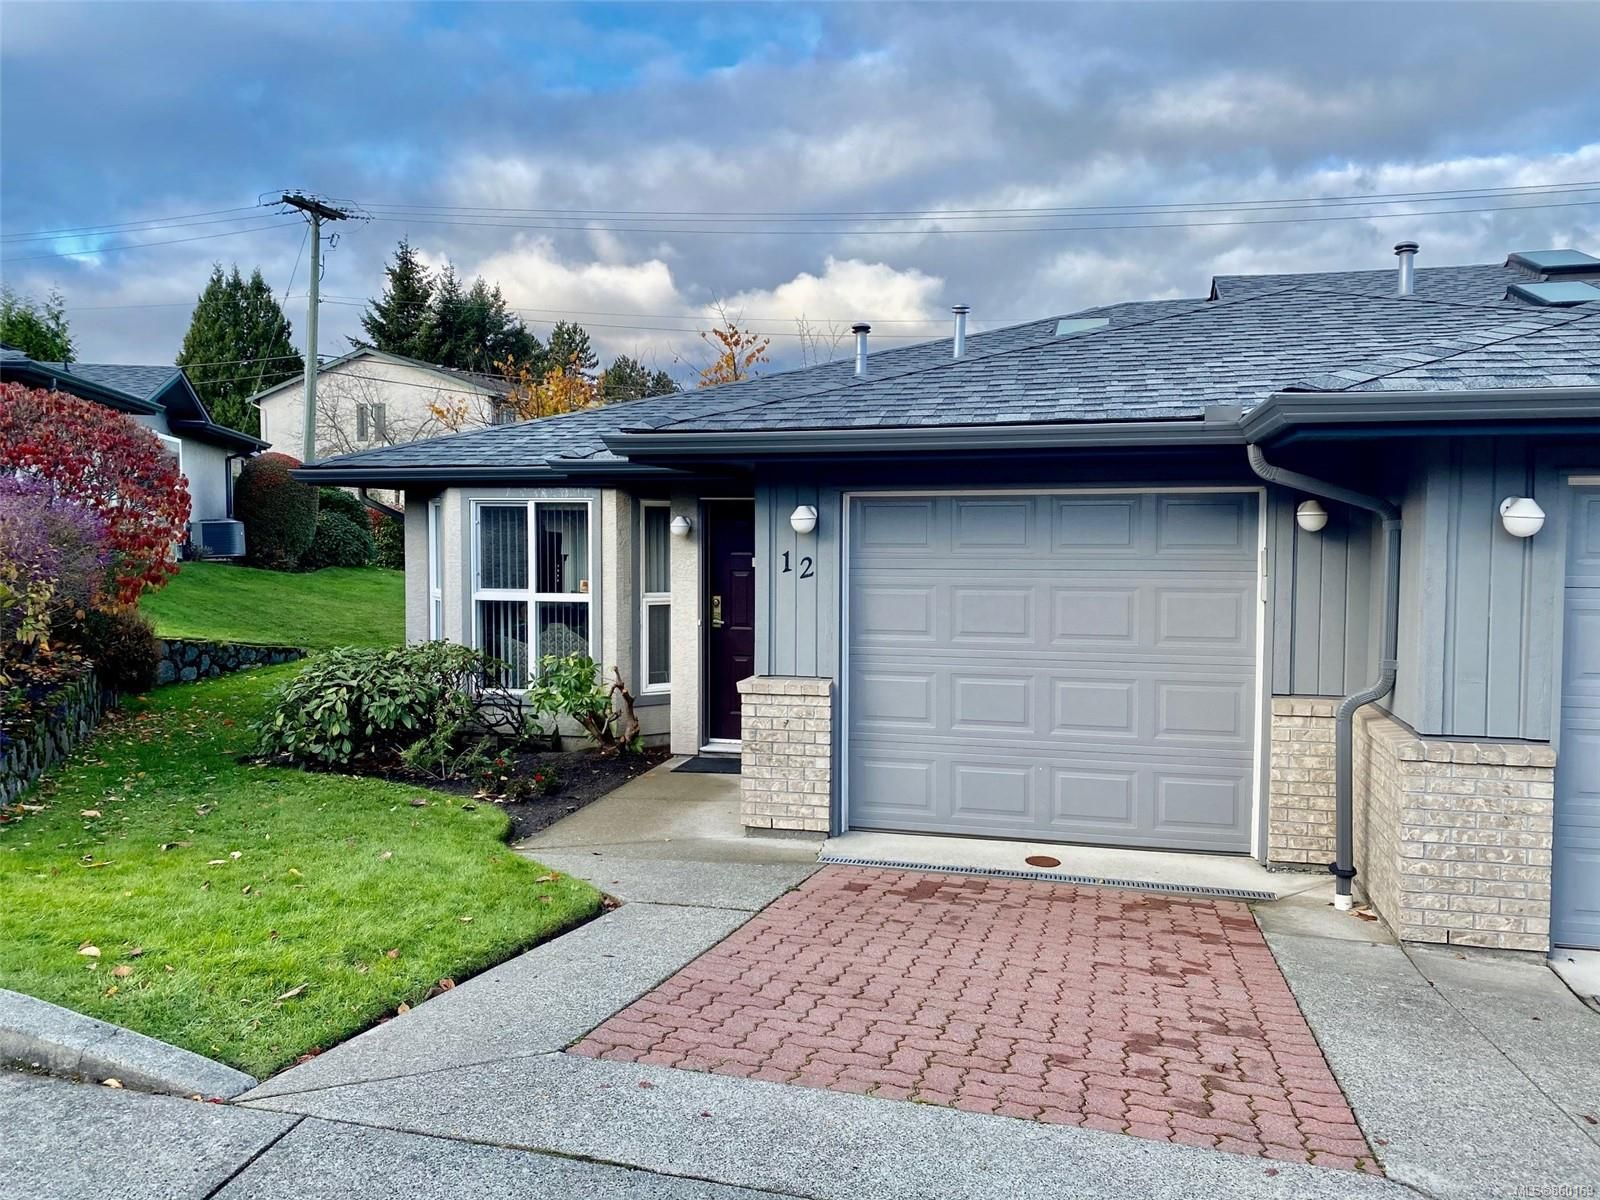 Main Photo: 12 1473 Garnet Rd in : SE Cedar Hill Row/Townhouse for sale (Saanich East)  : MLS®# 860169